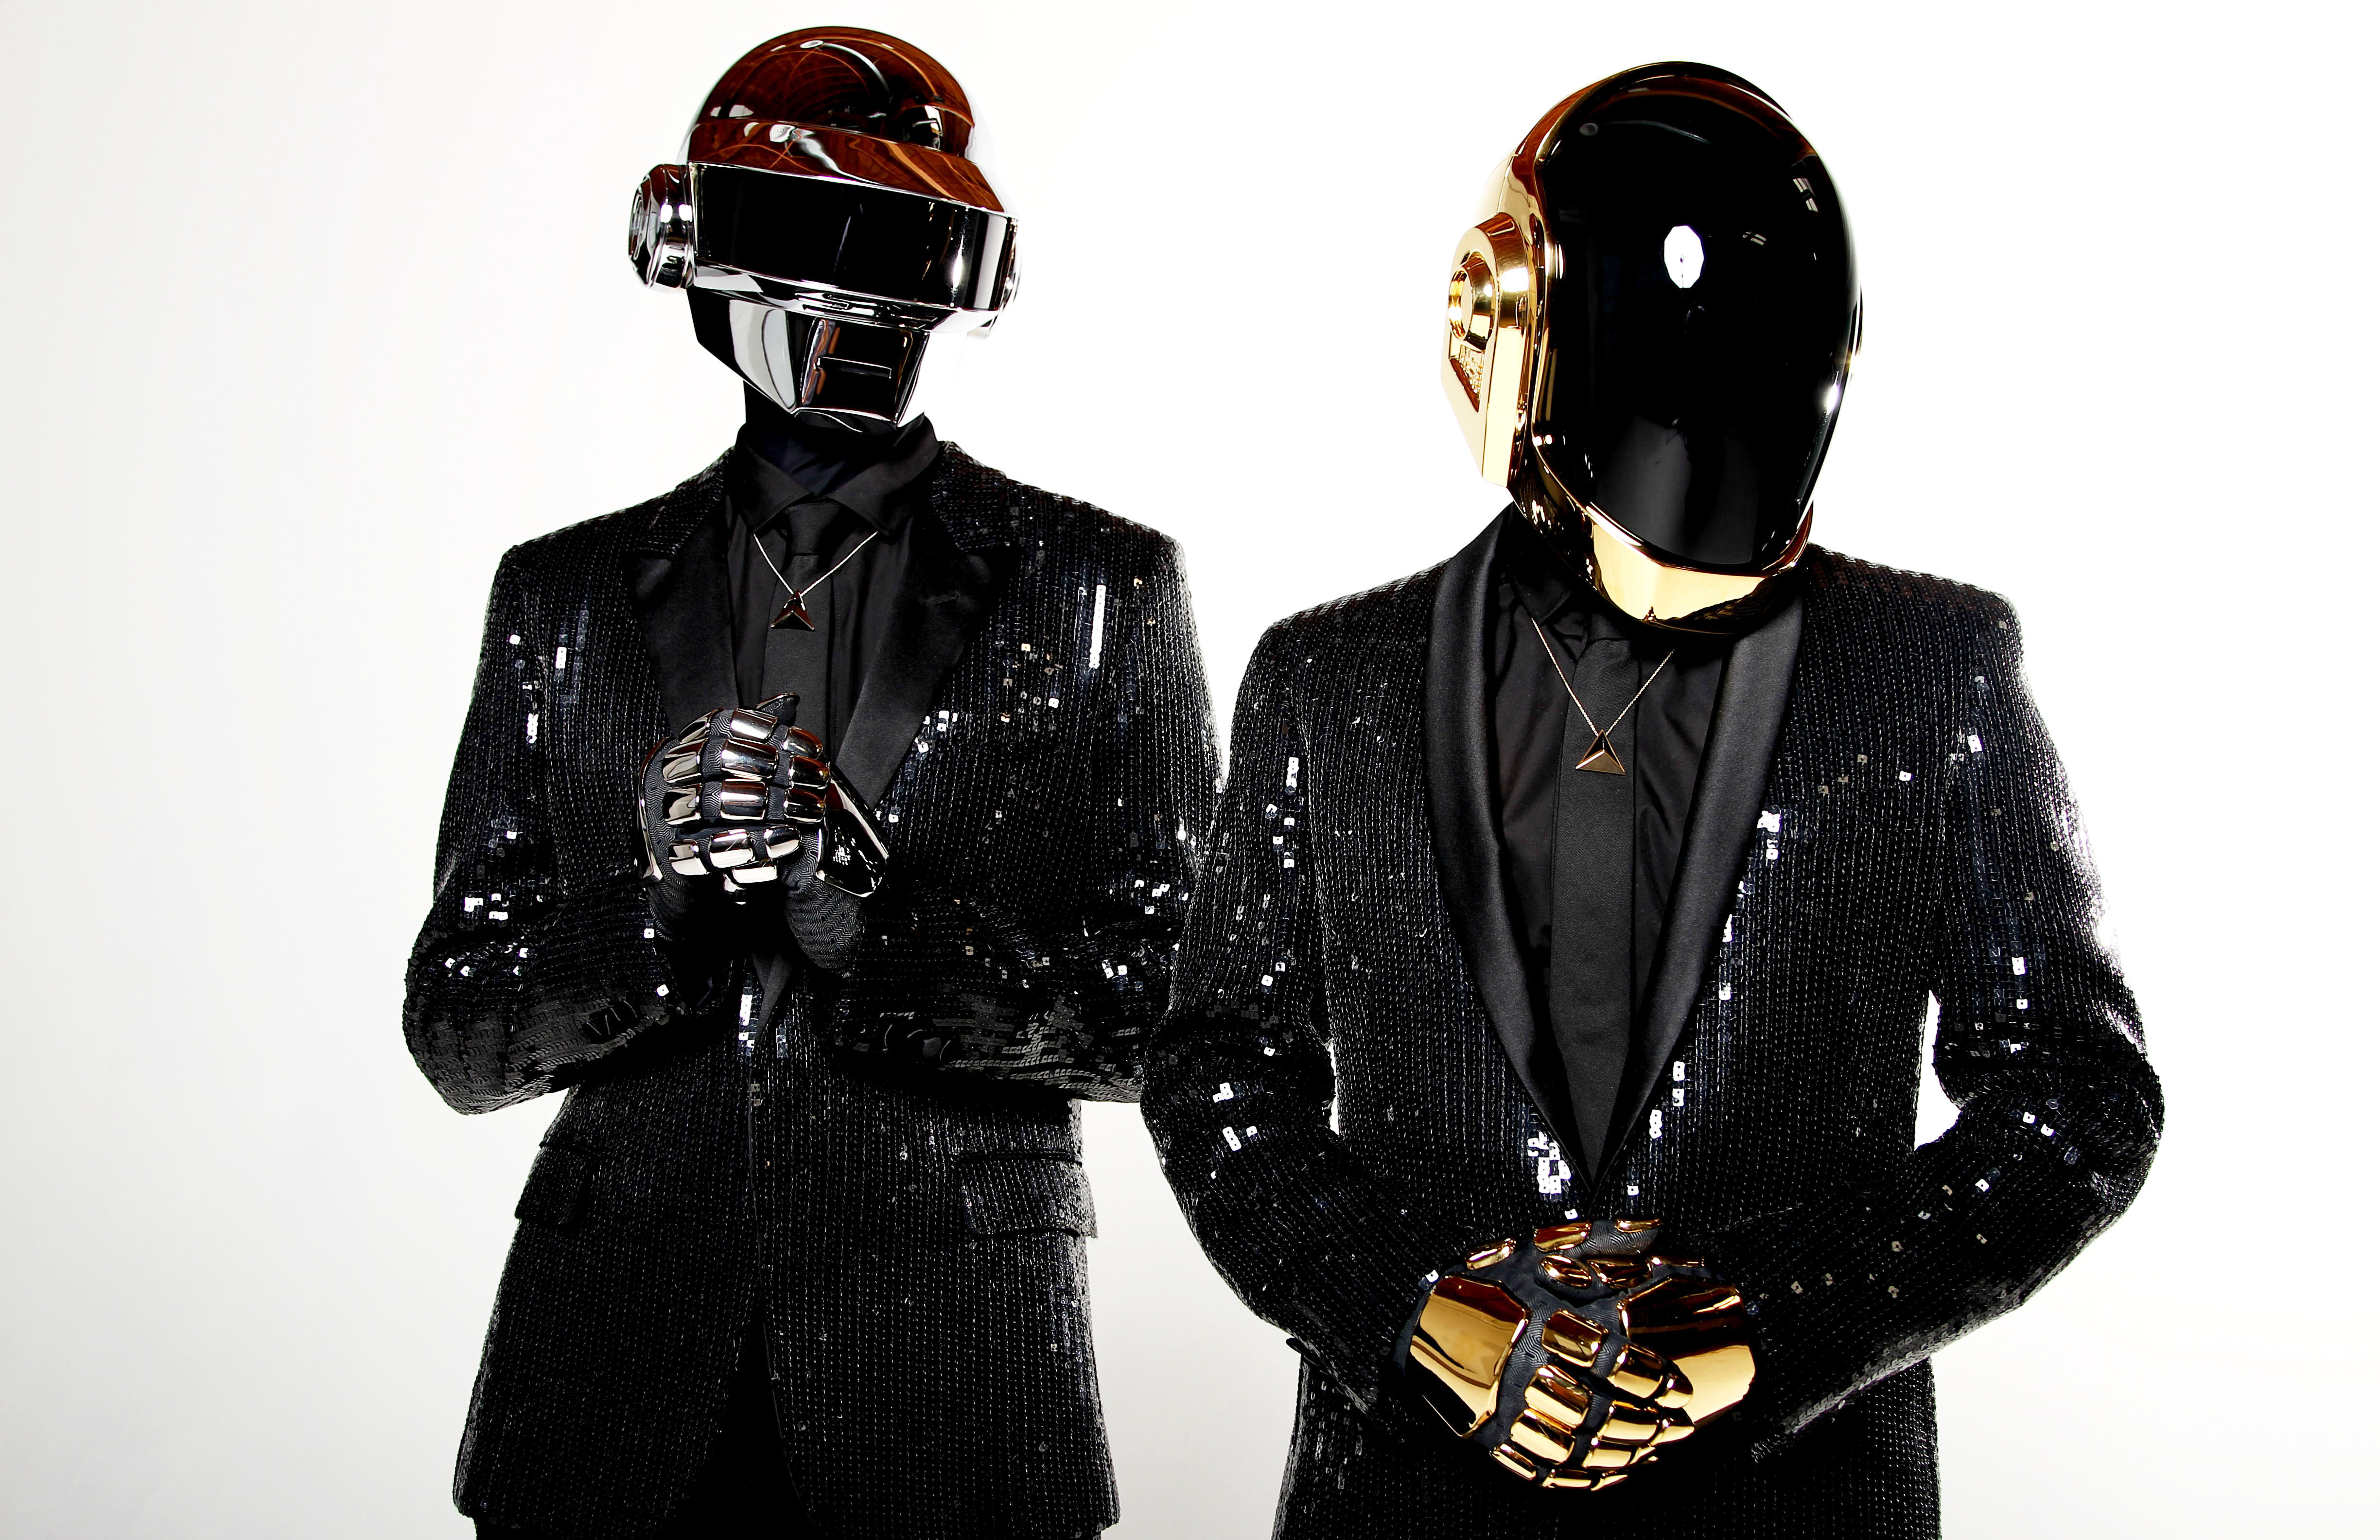 Daft Punk pose for a portrait